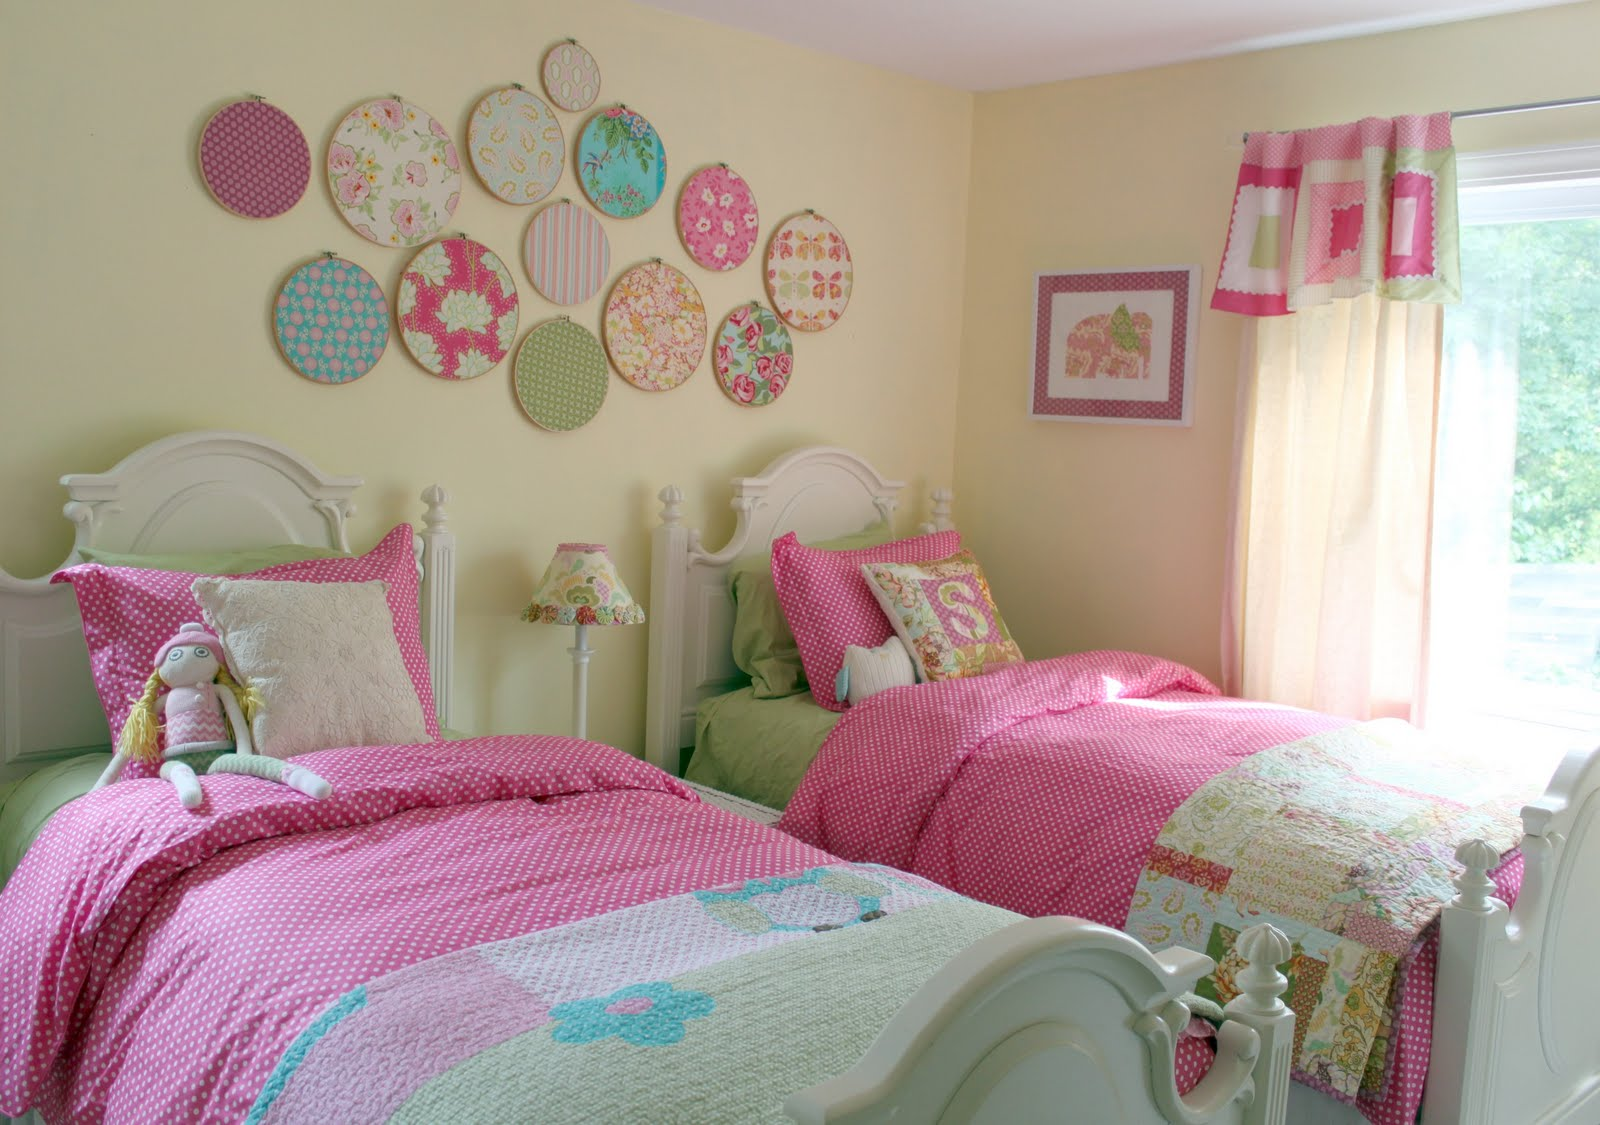 room decorations for girls fascinating teenage wall decor ideas 13 glamorous decorating room cheap DQGMRCA